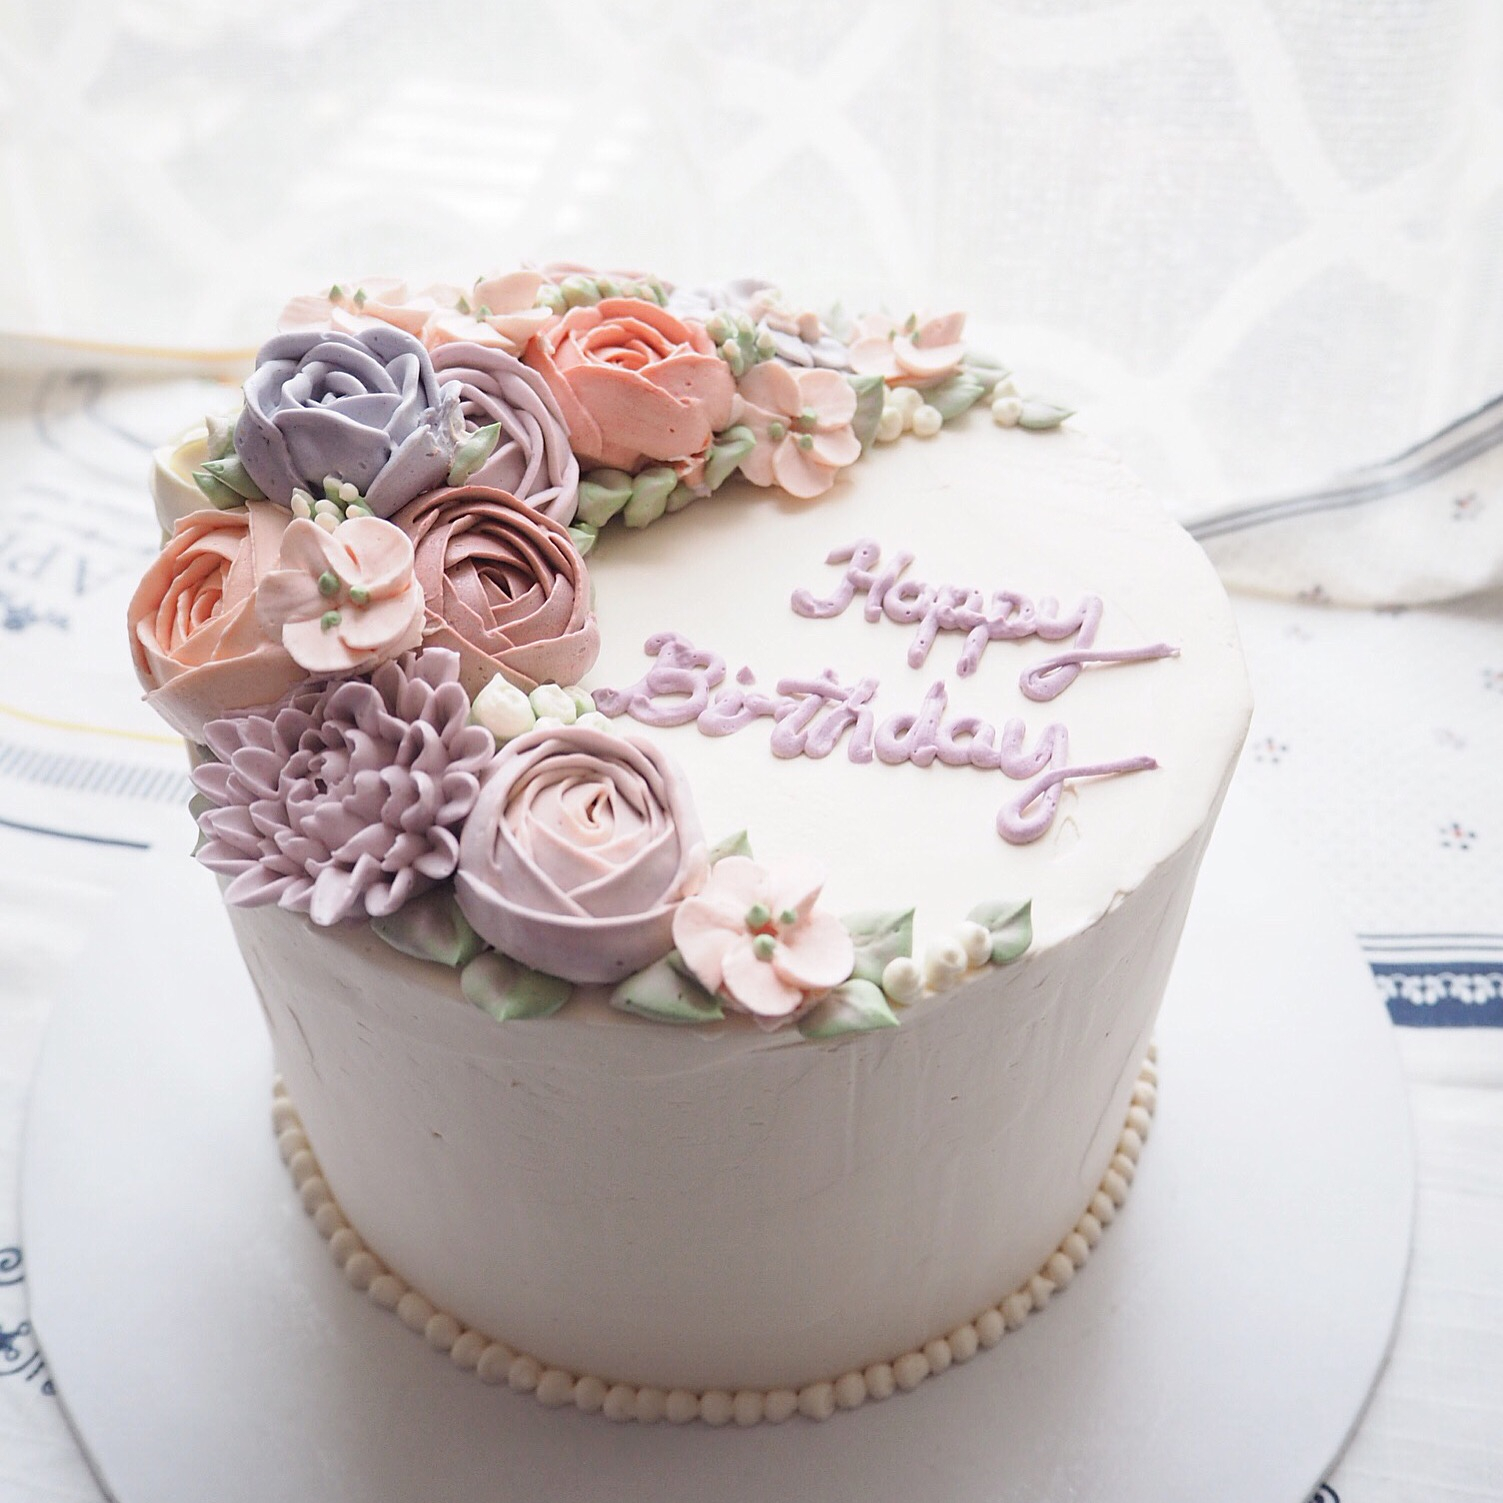 Birthday Flower Cake Index Of Wp Contentgallerybespoke Buttercream Flower Cakes